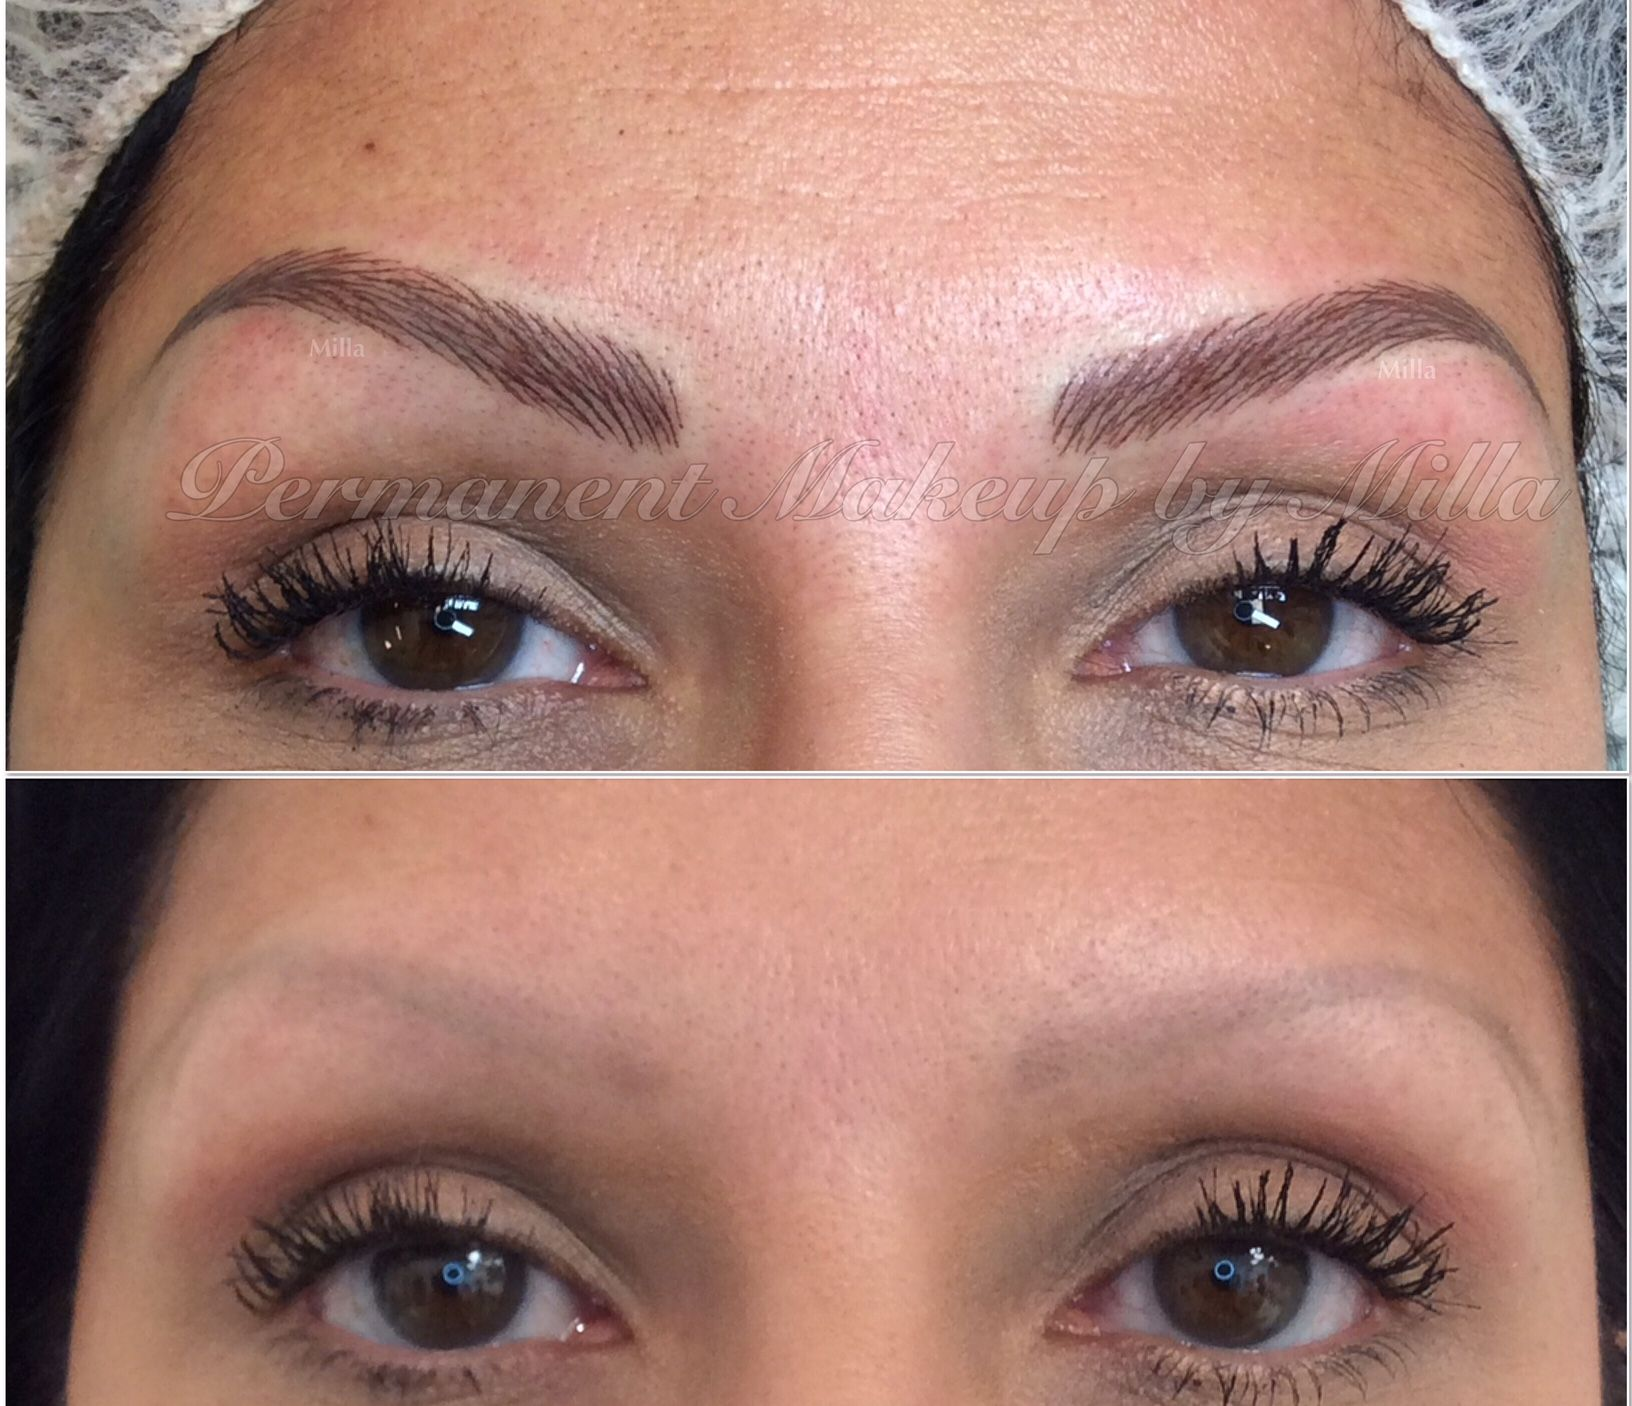 Permanent Makeup eyebrows with 3D hair strokes technique ...